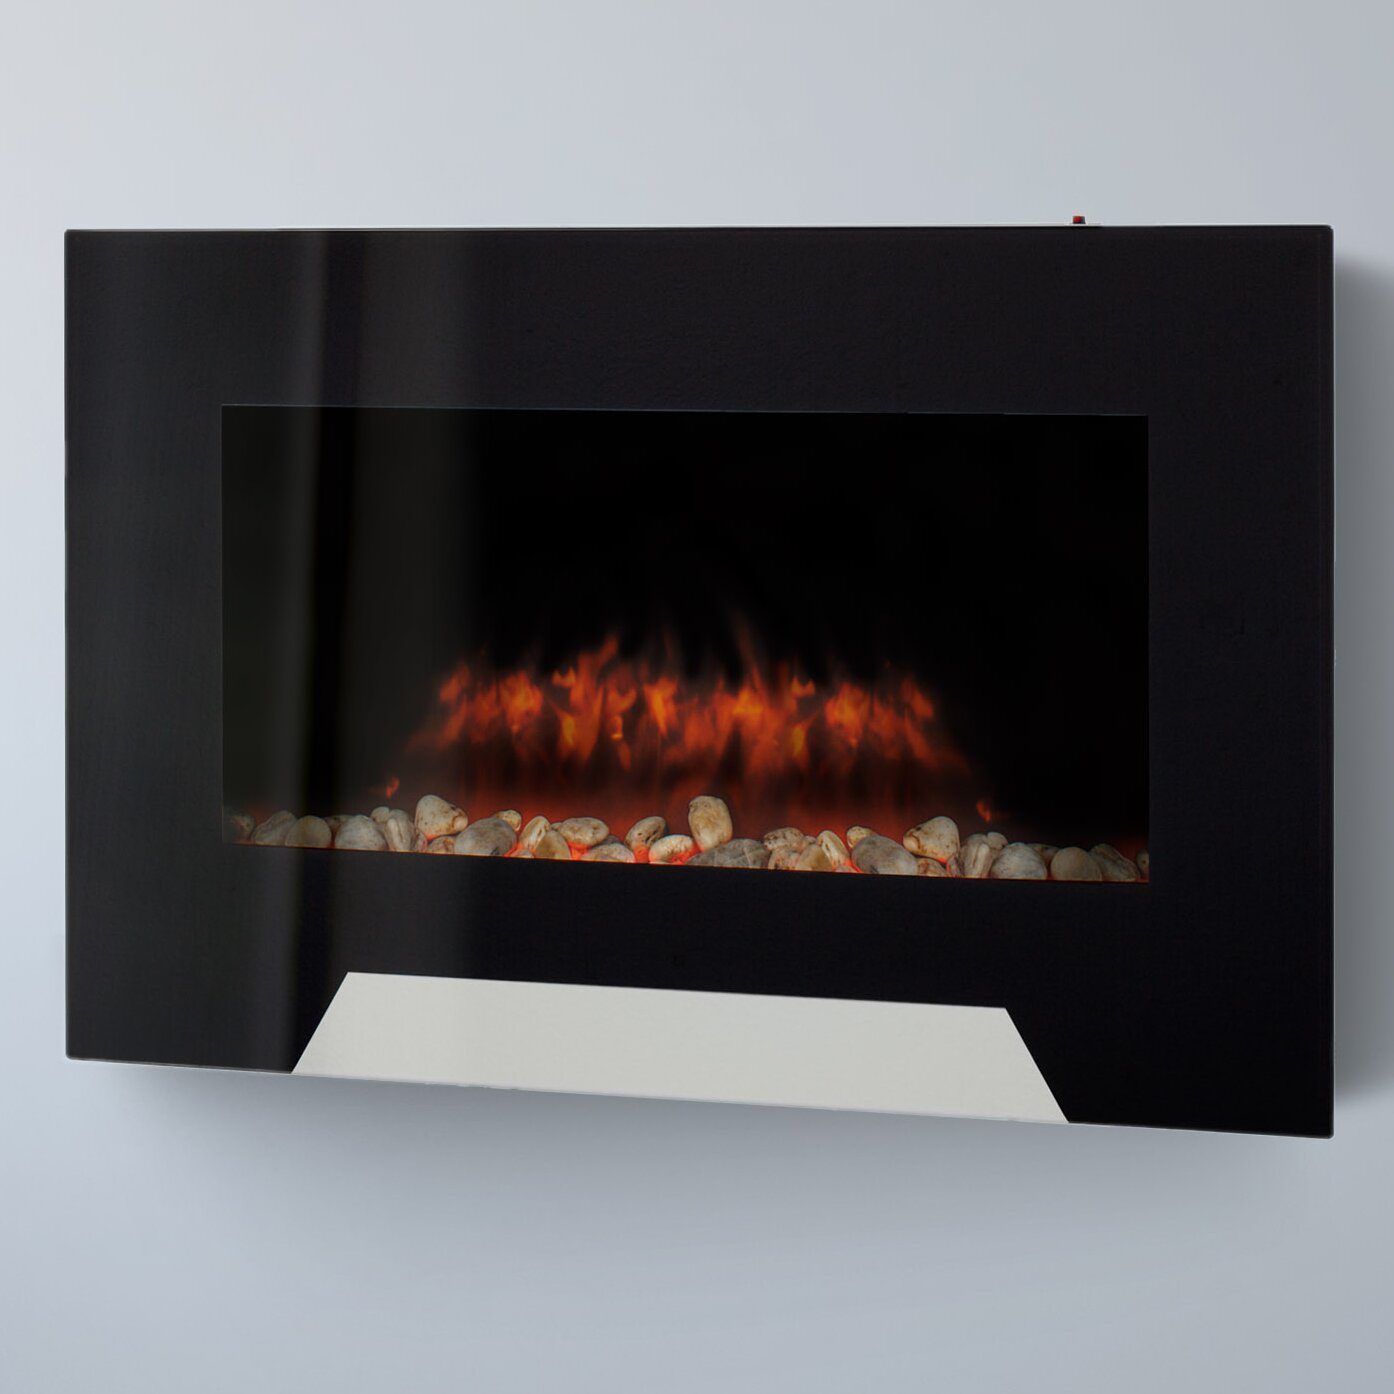 Corliving Wall Mount Electric Fireplace Reviews Wayfair